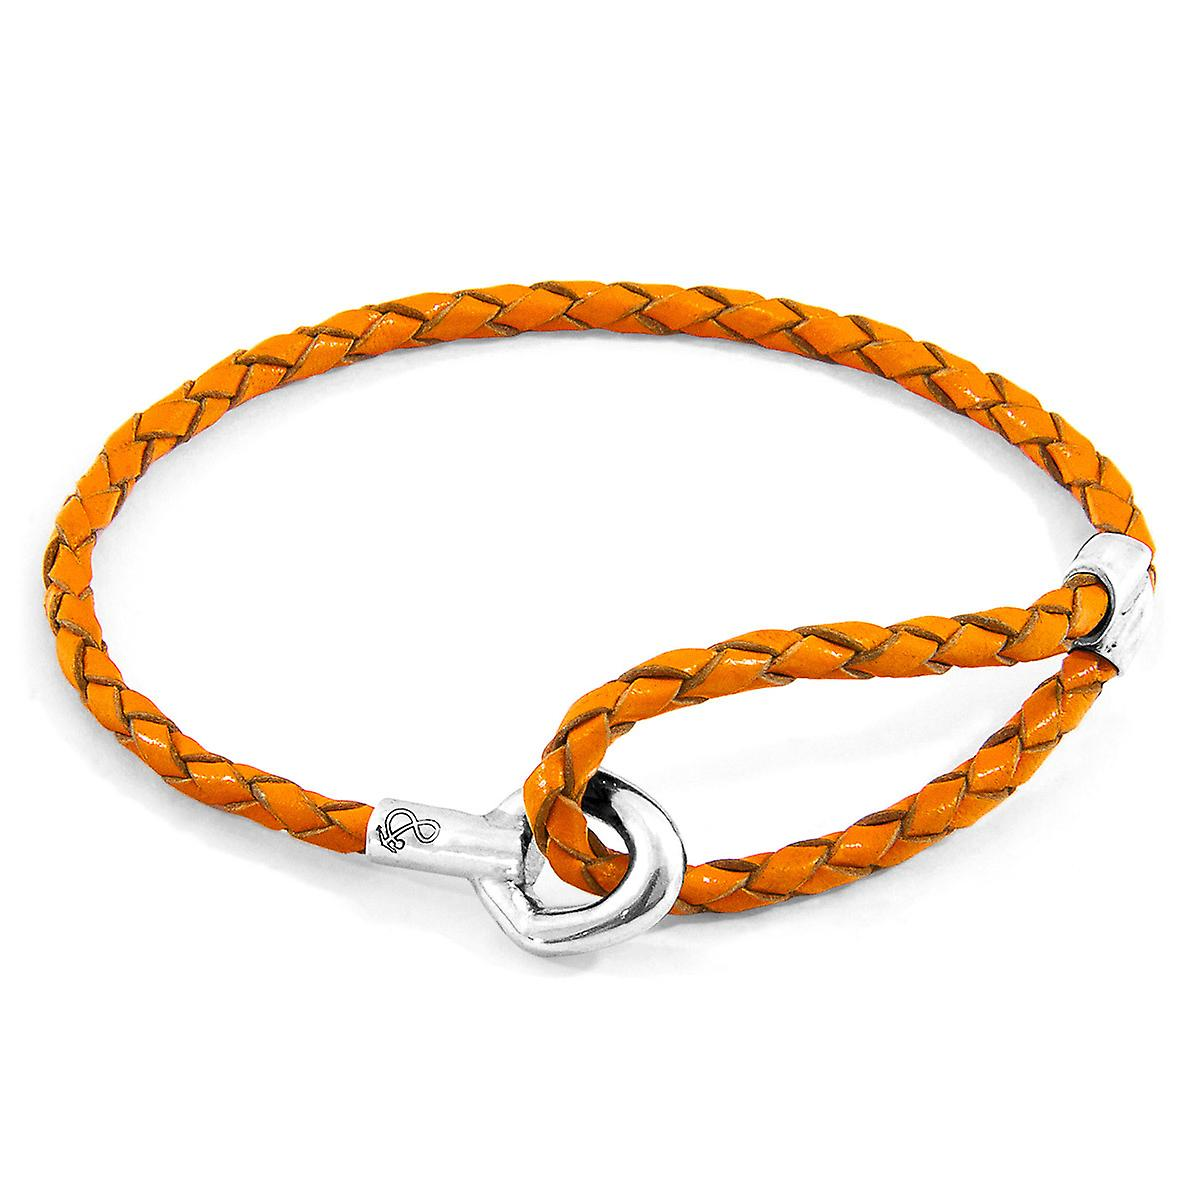 Anchor & Crew Fire Orange Blake Silver and Braided Leather Bracelet